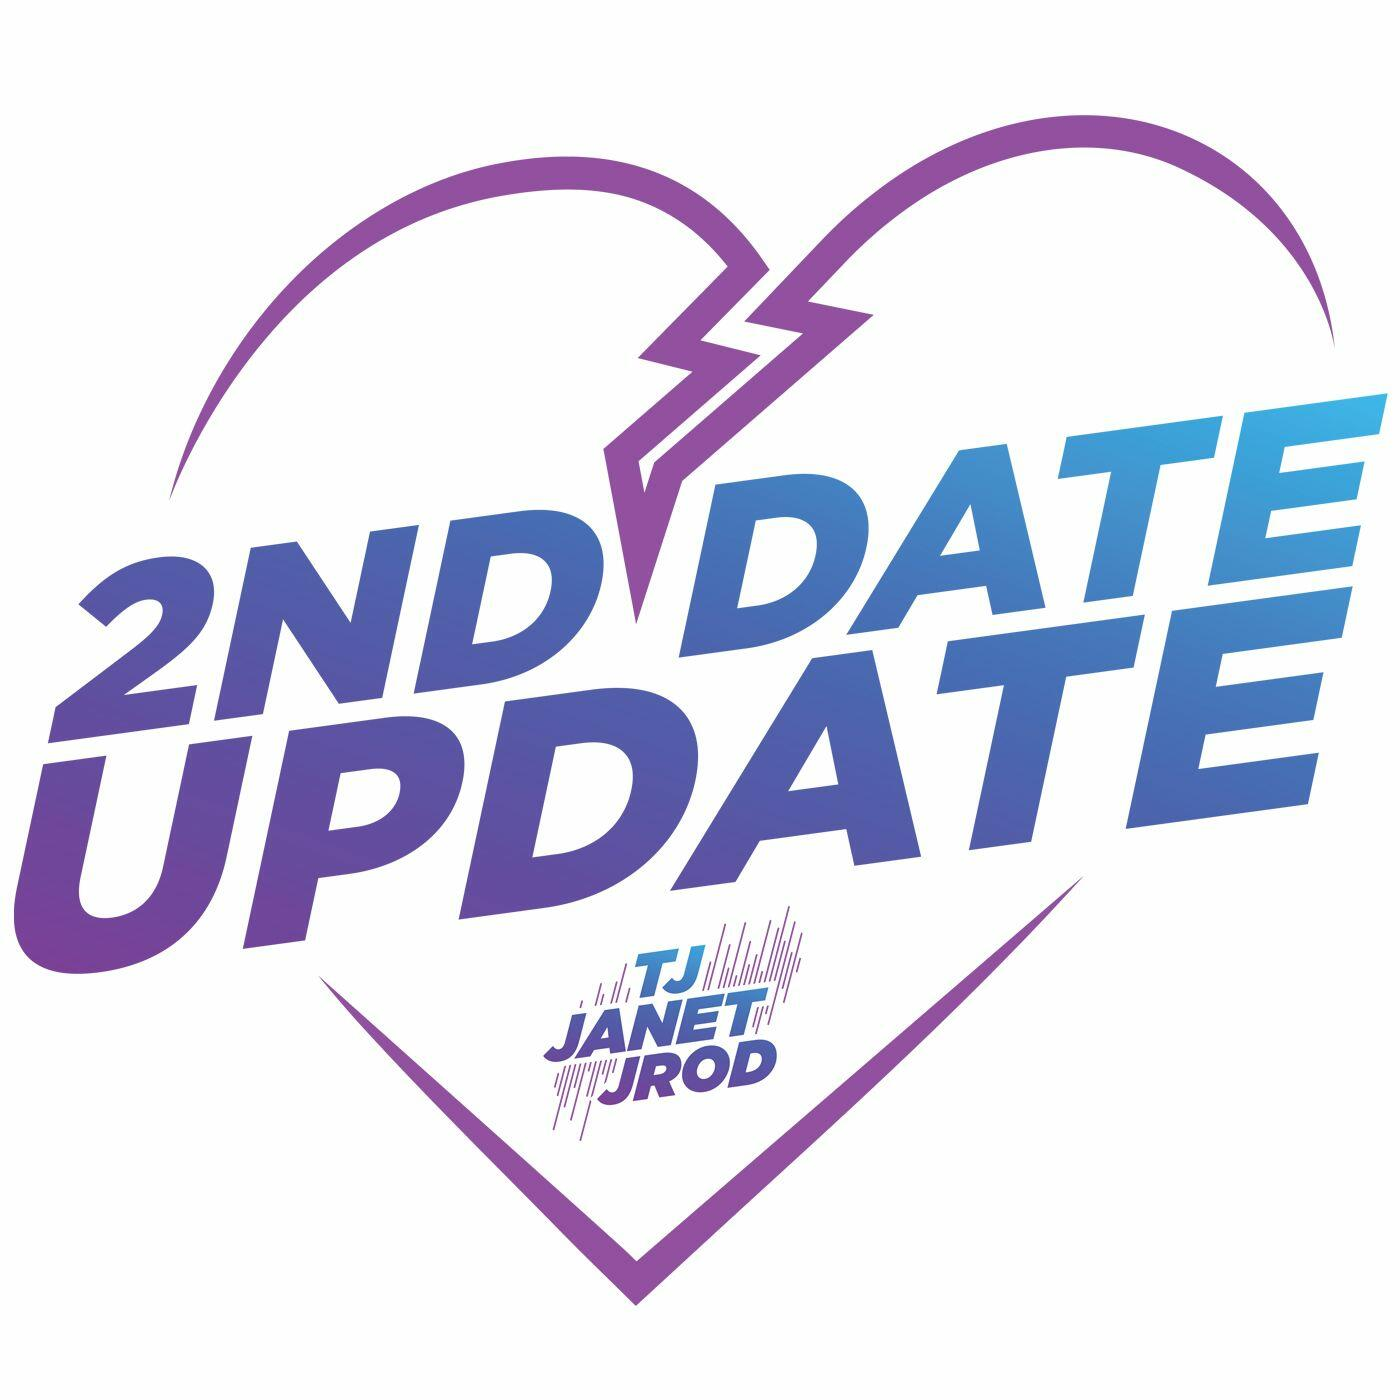 TJ, Janet and Jrod 2nd Date Update